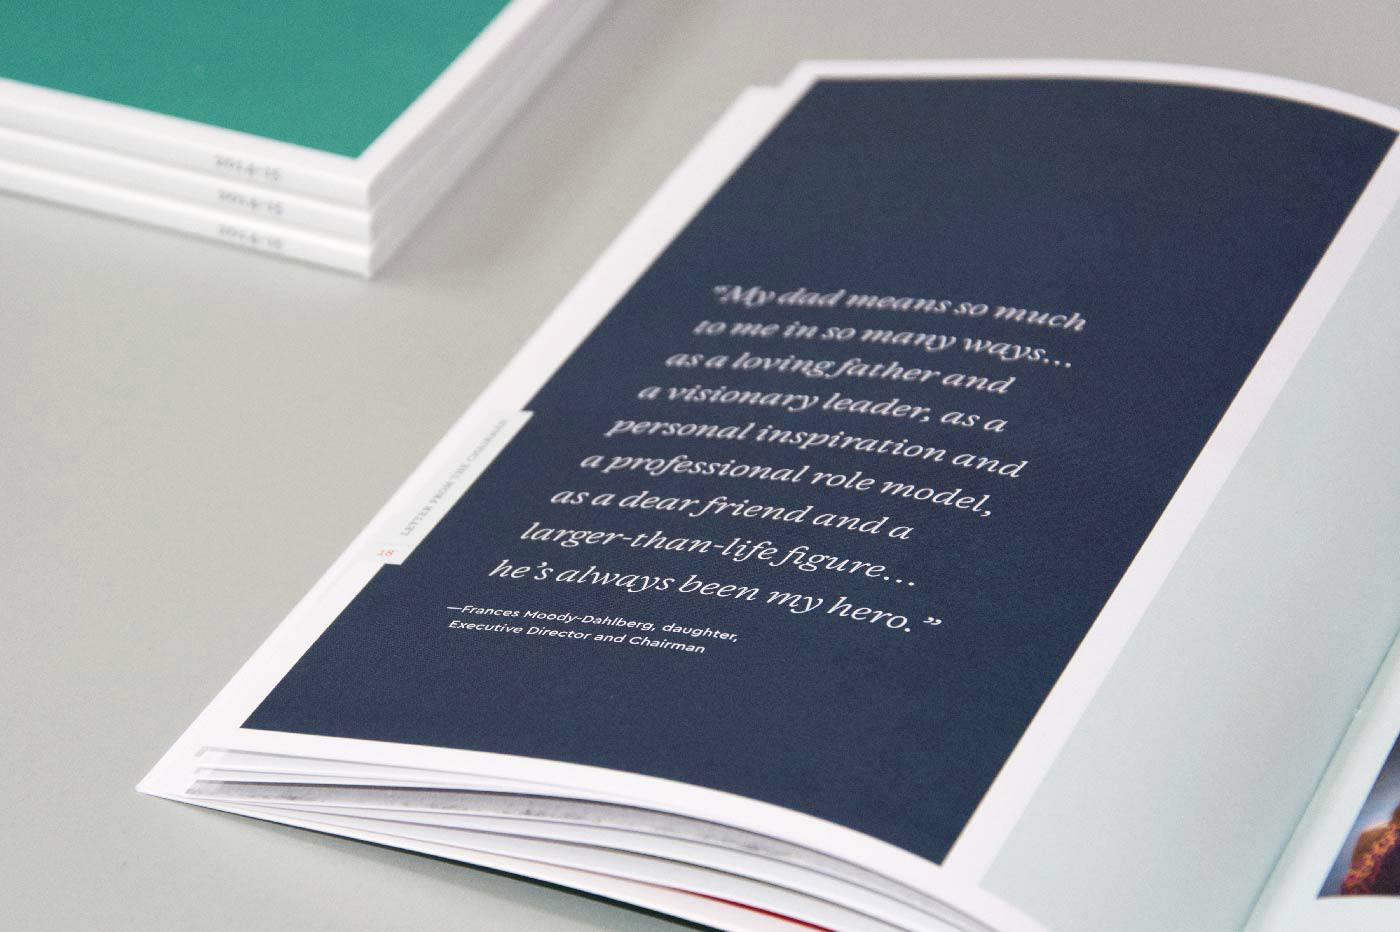 Moody Foundation Annual Report interior quote detail